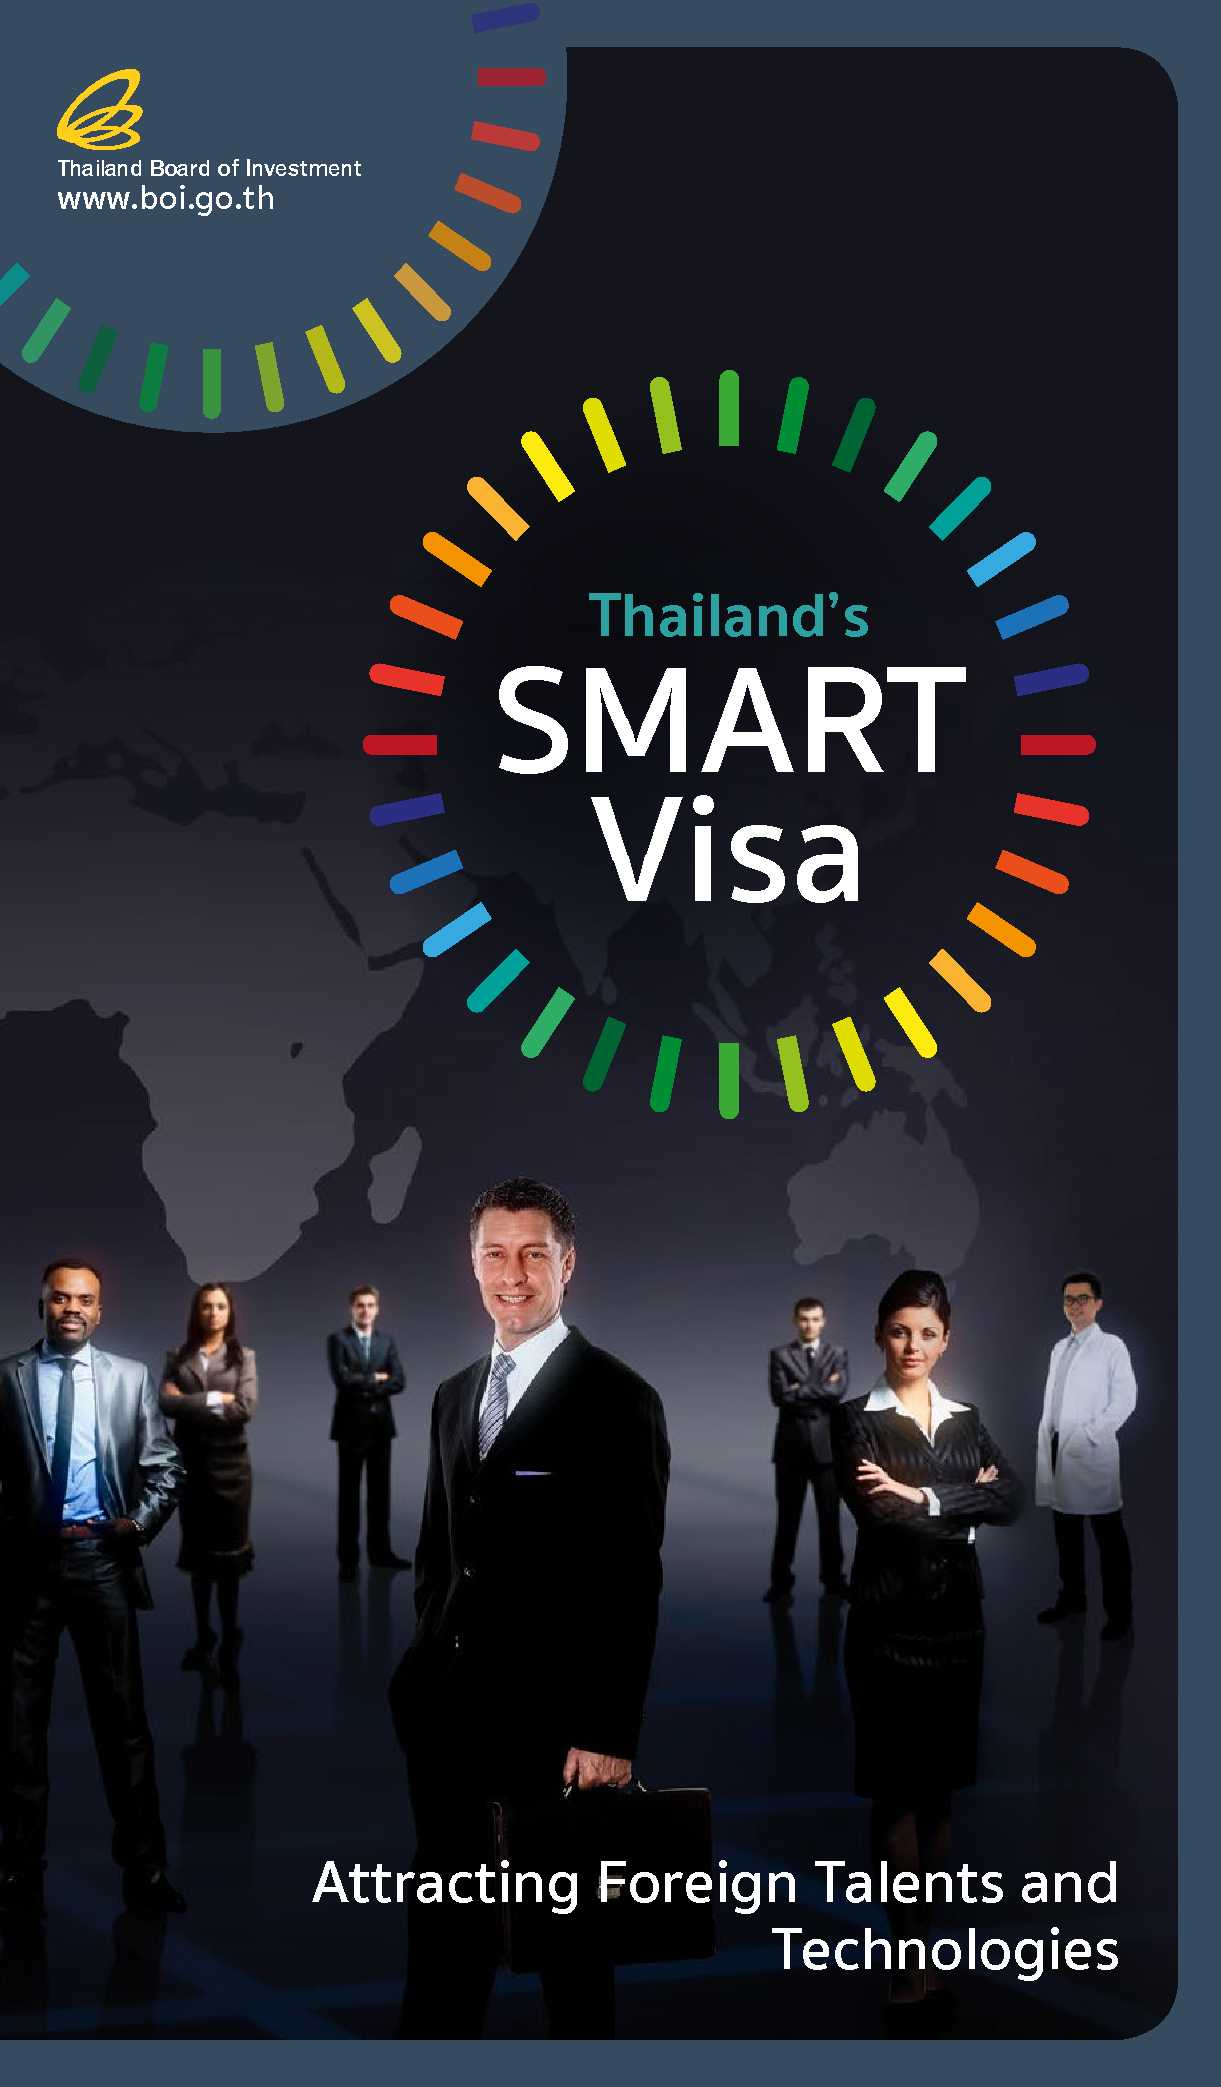 Announcement on SMART Visa Program